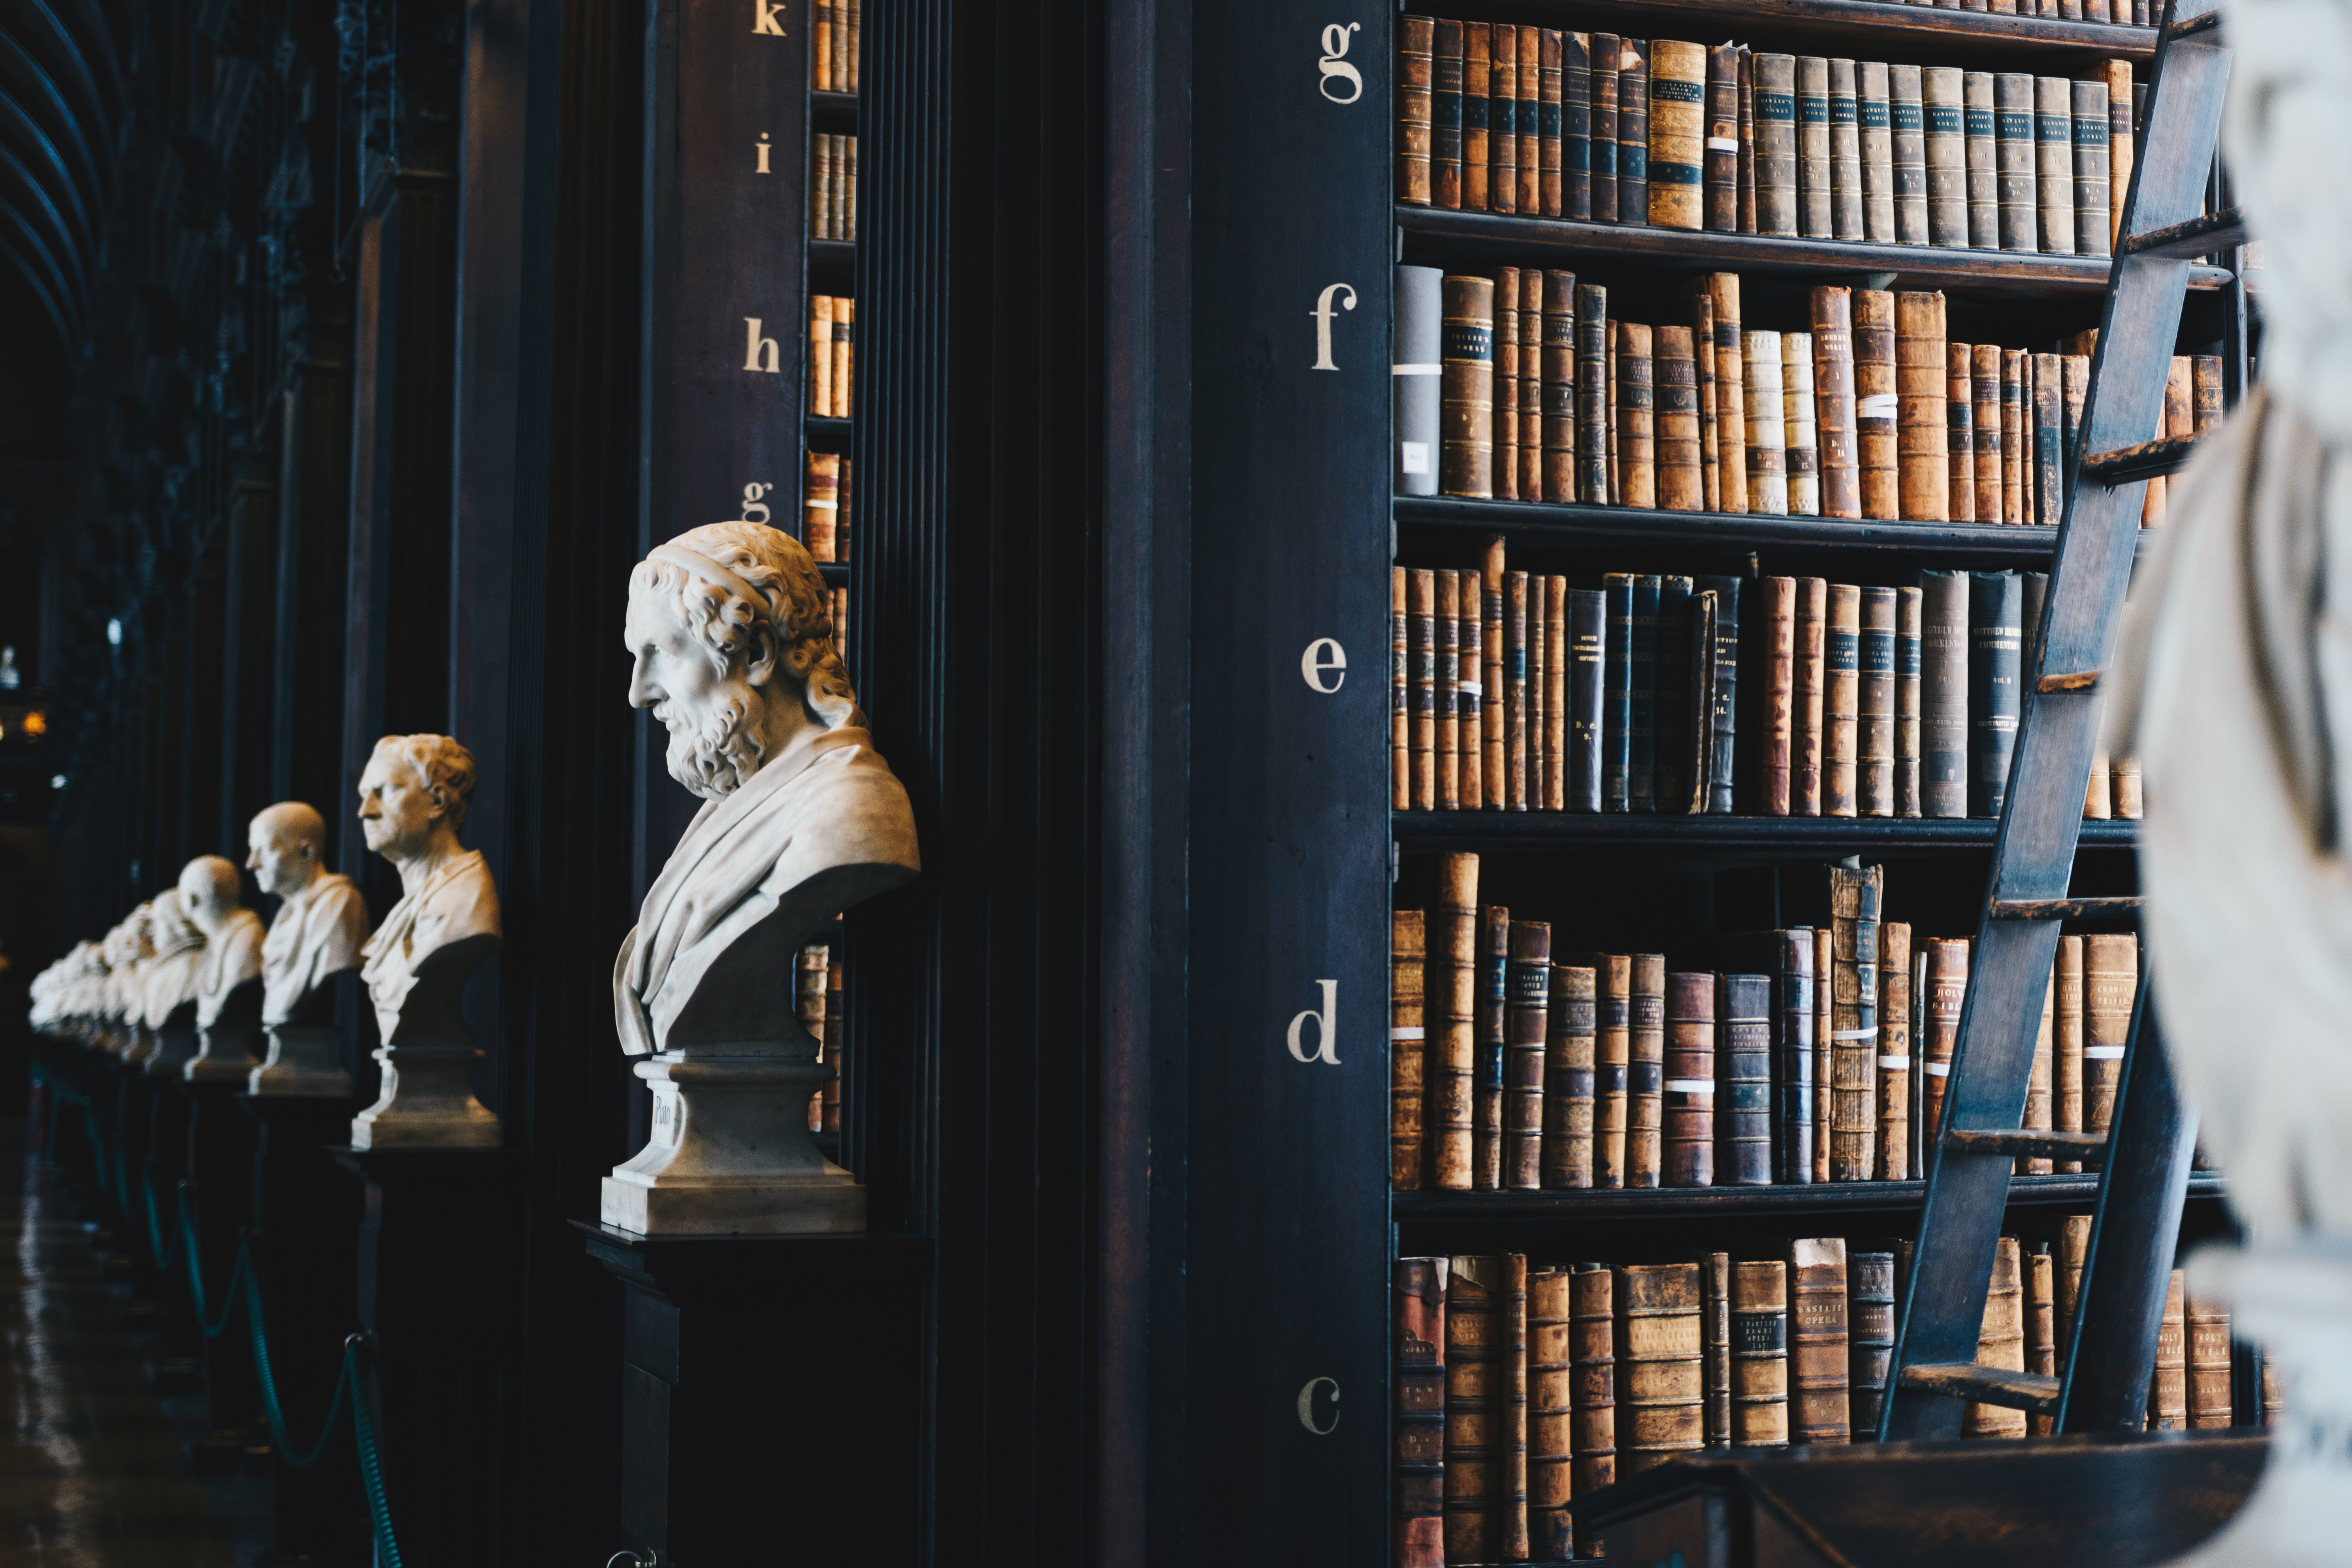 Library and head busts